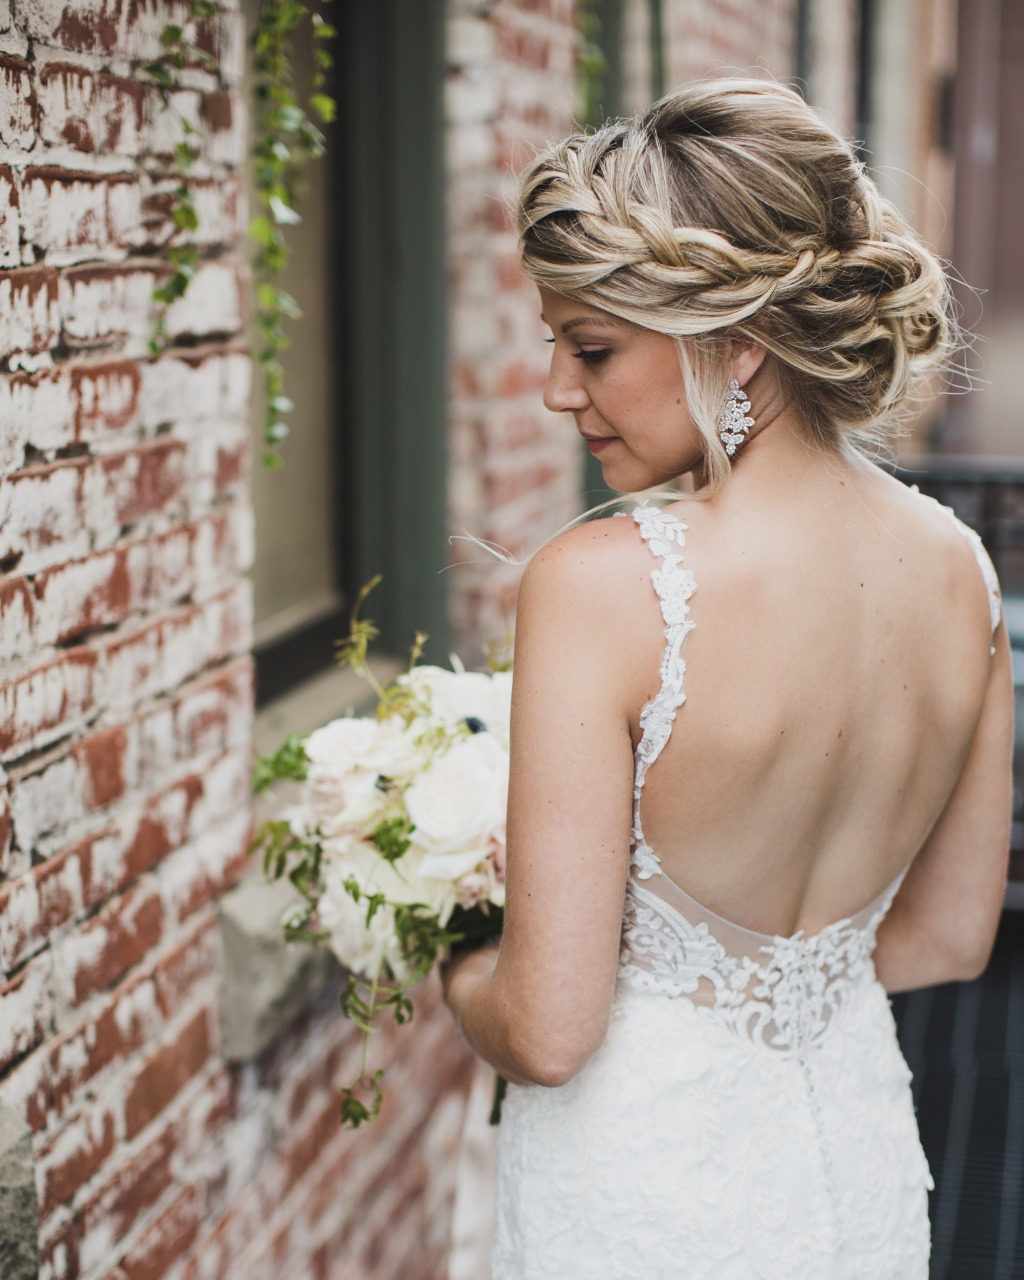 Love this back detail!